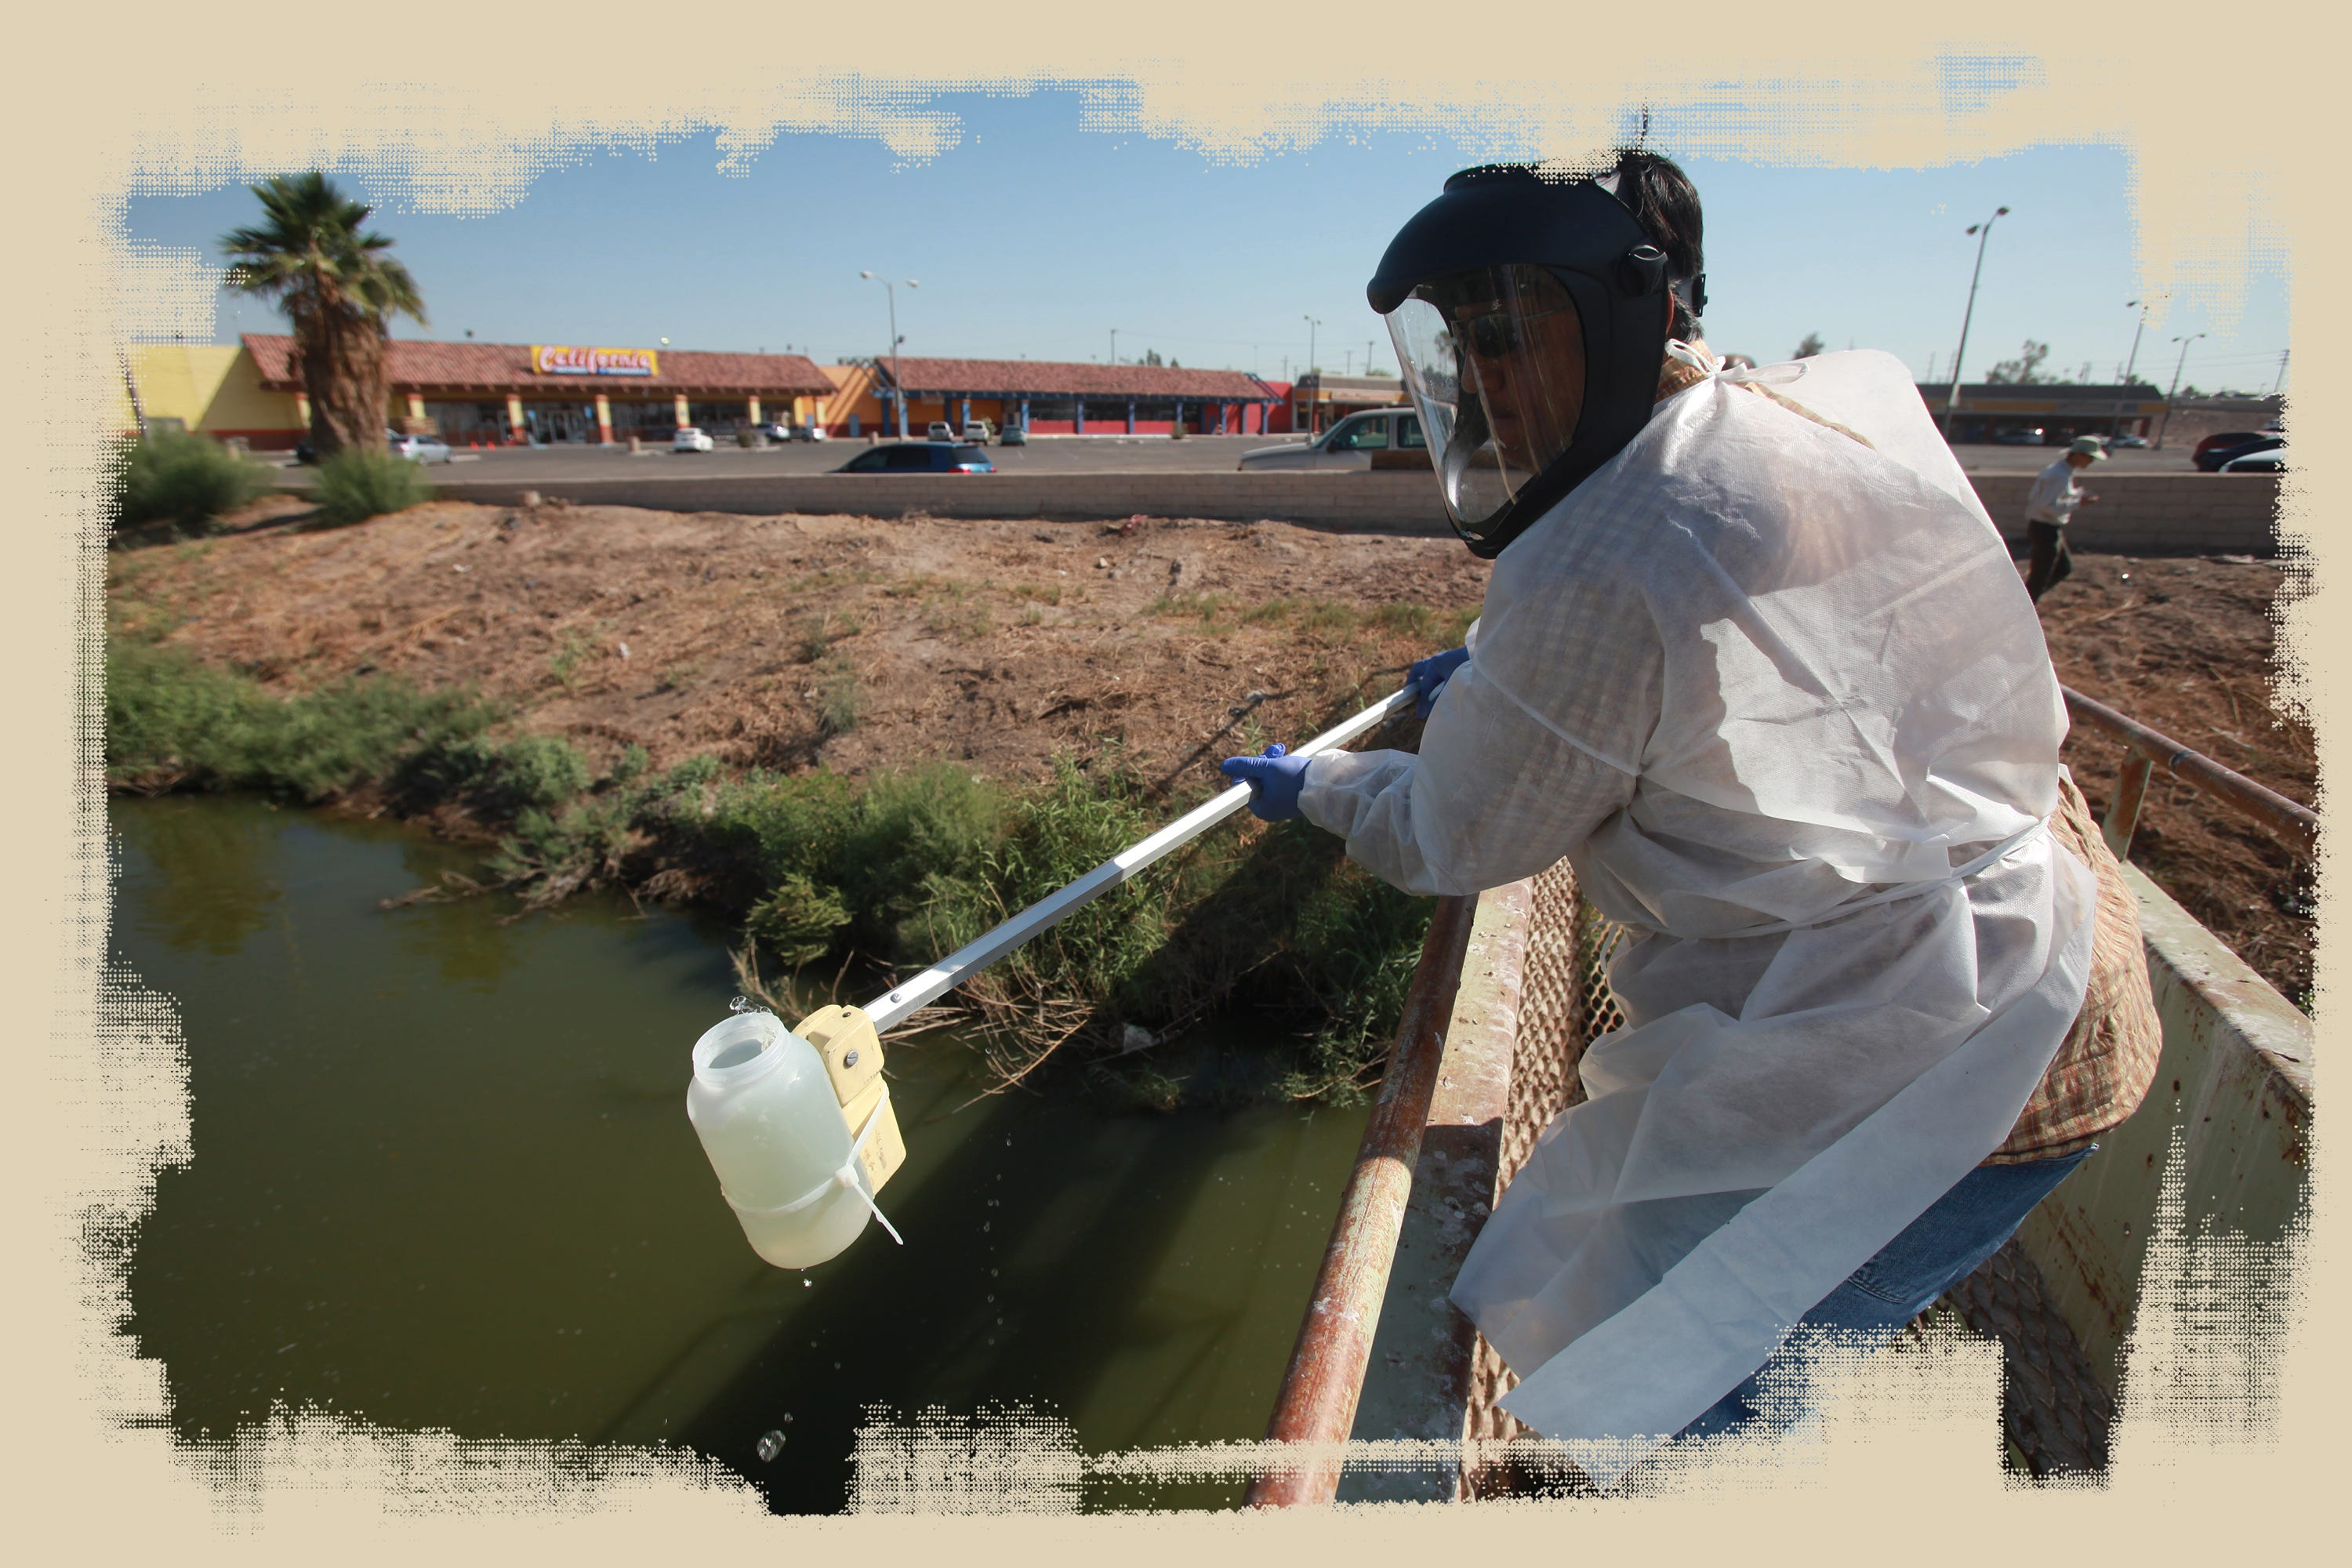 An employee of the California Regional Water Quality Control Board takes a water sample from the New River in Calexico.